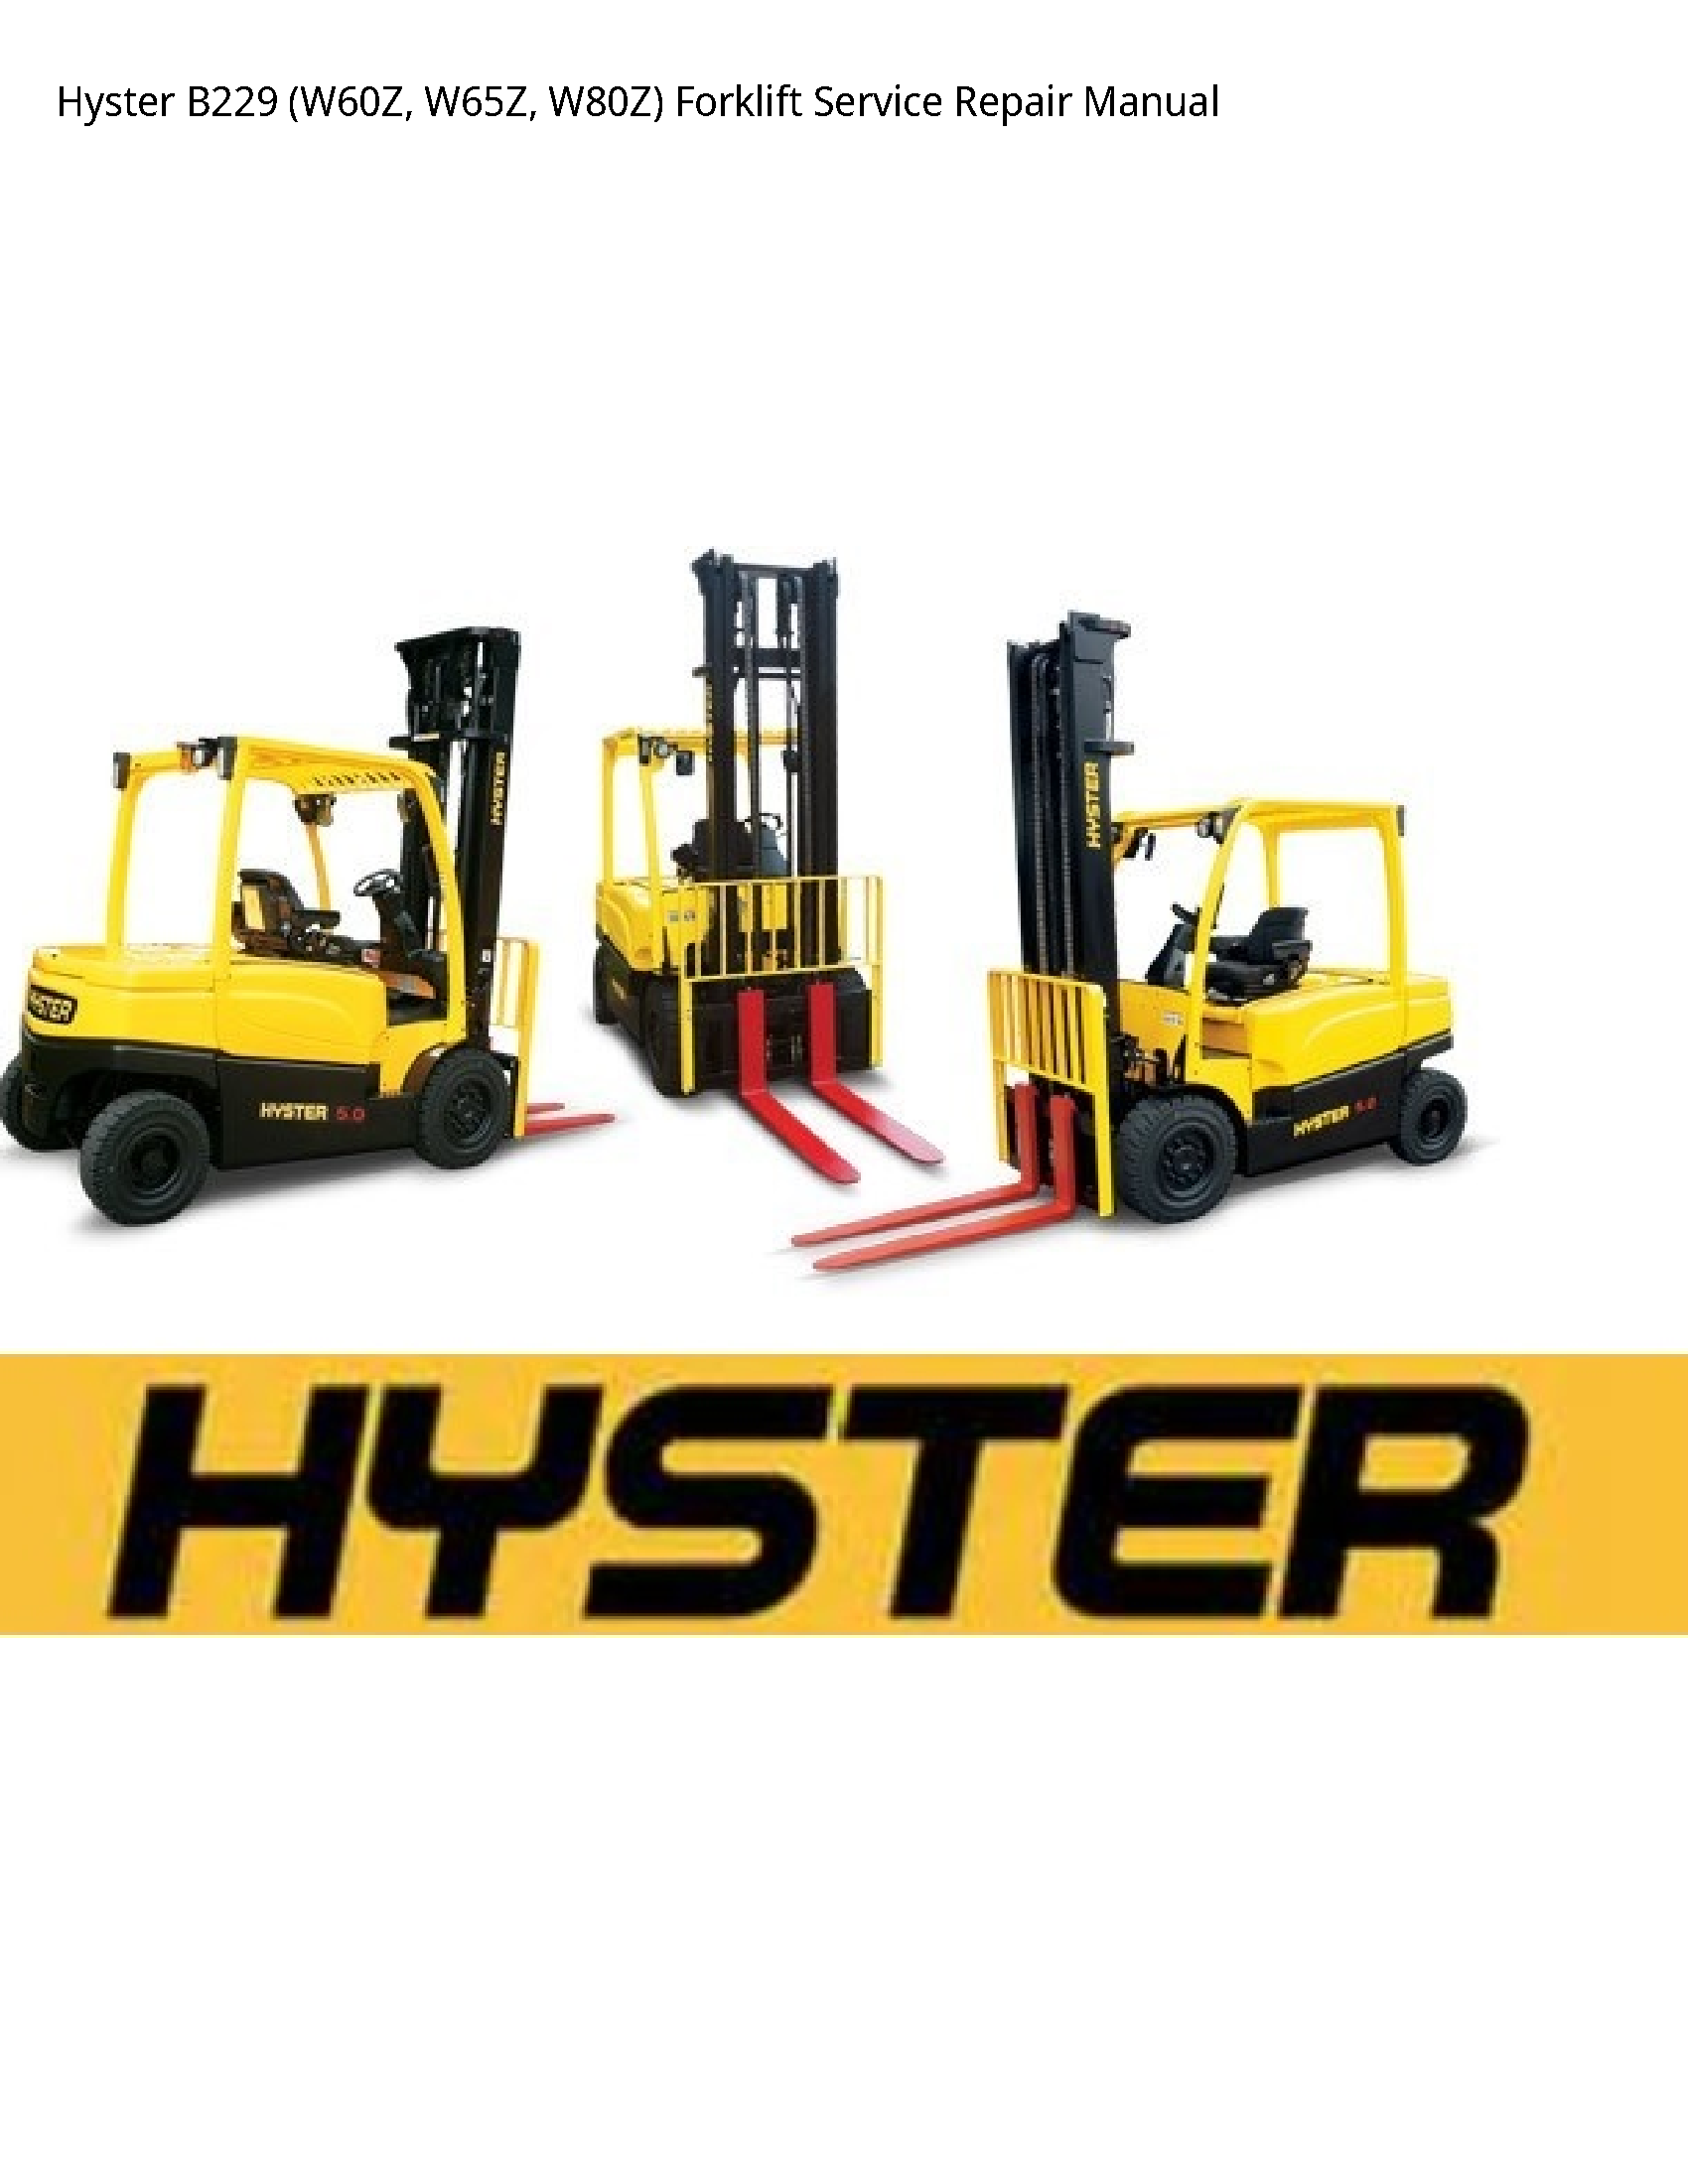 Hyster B229 Forklift manual